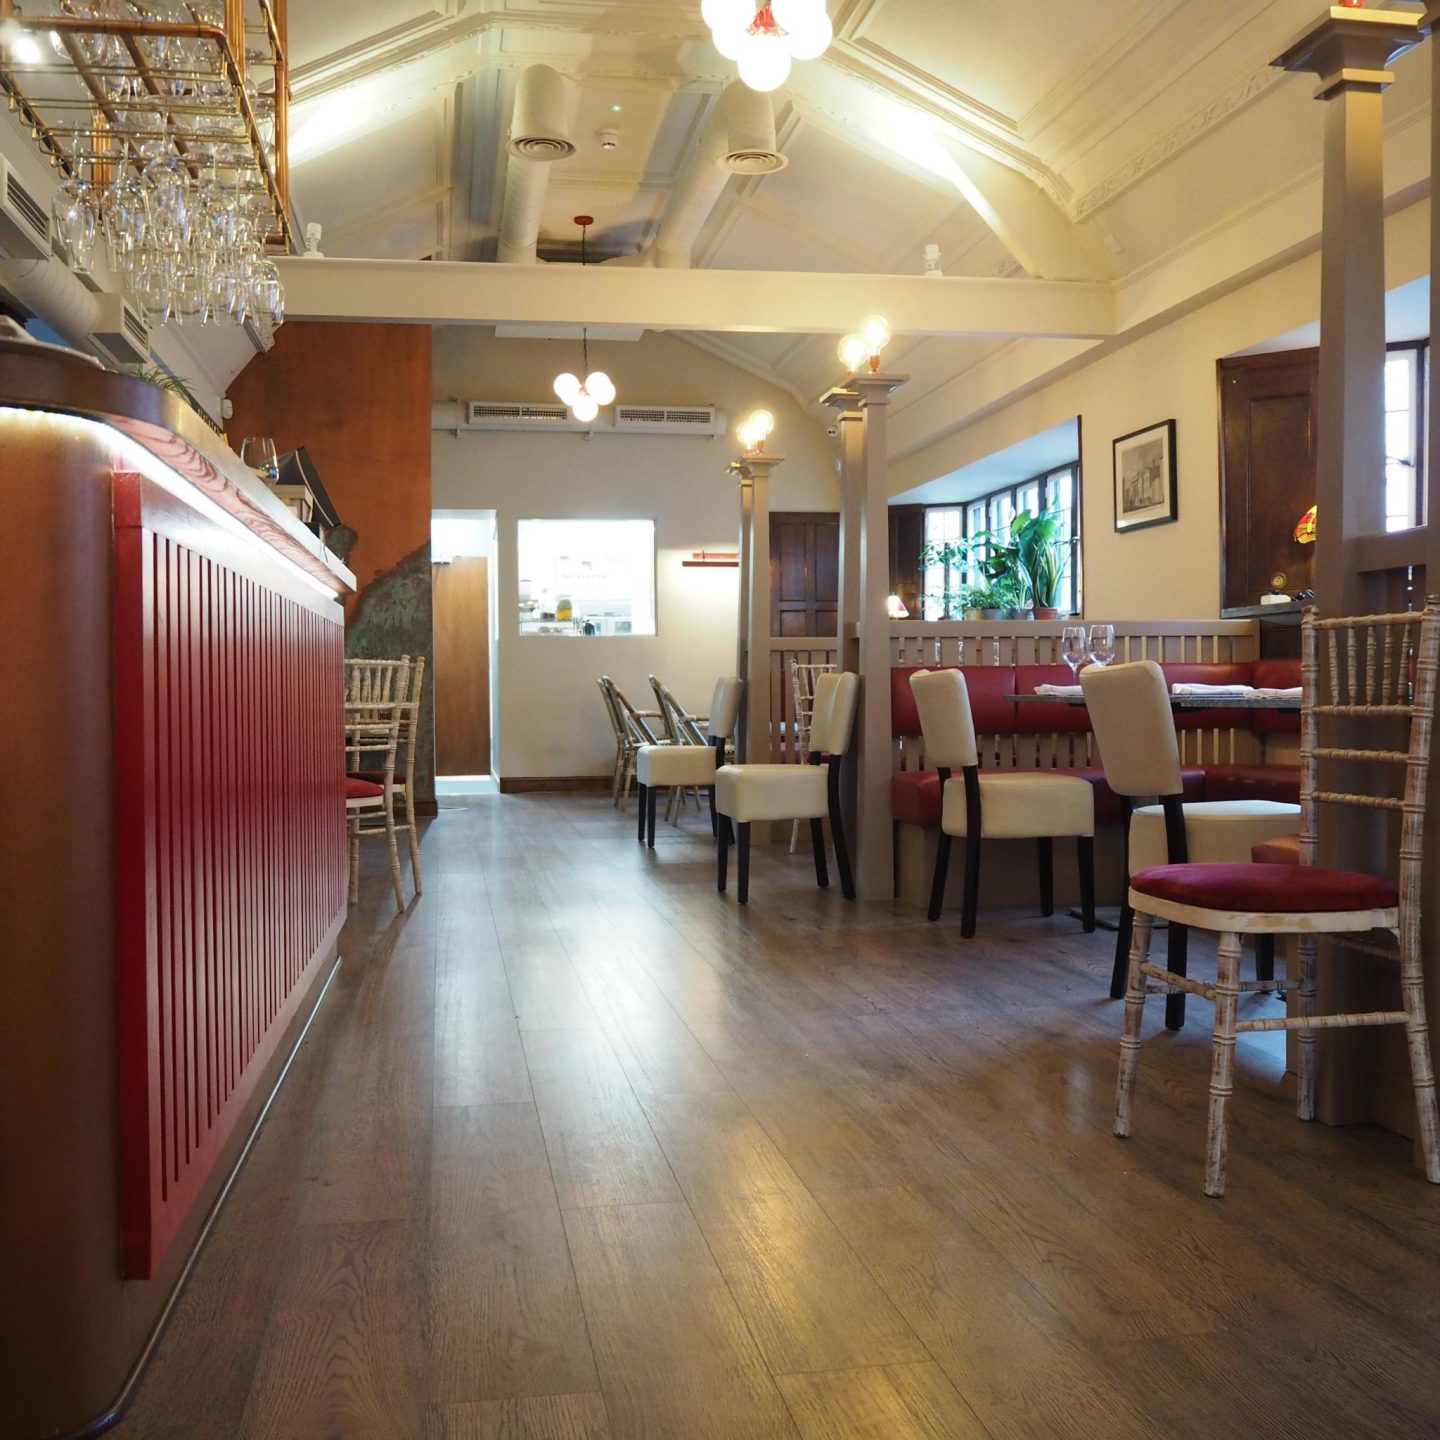 The Plough at 38 Oxford